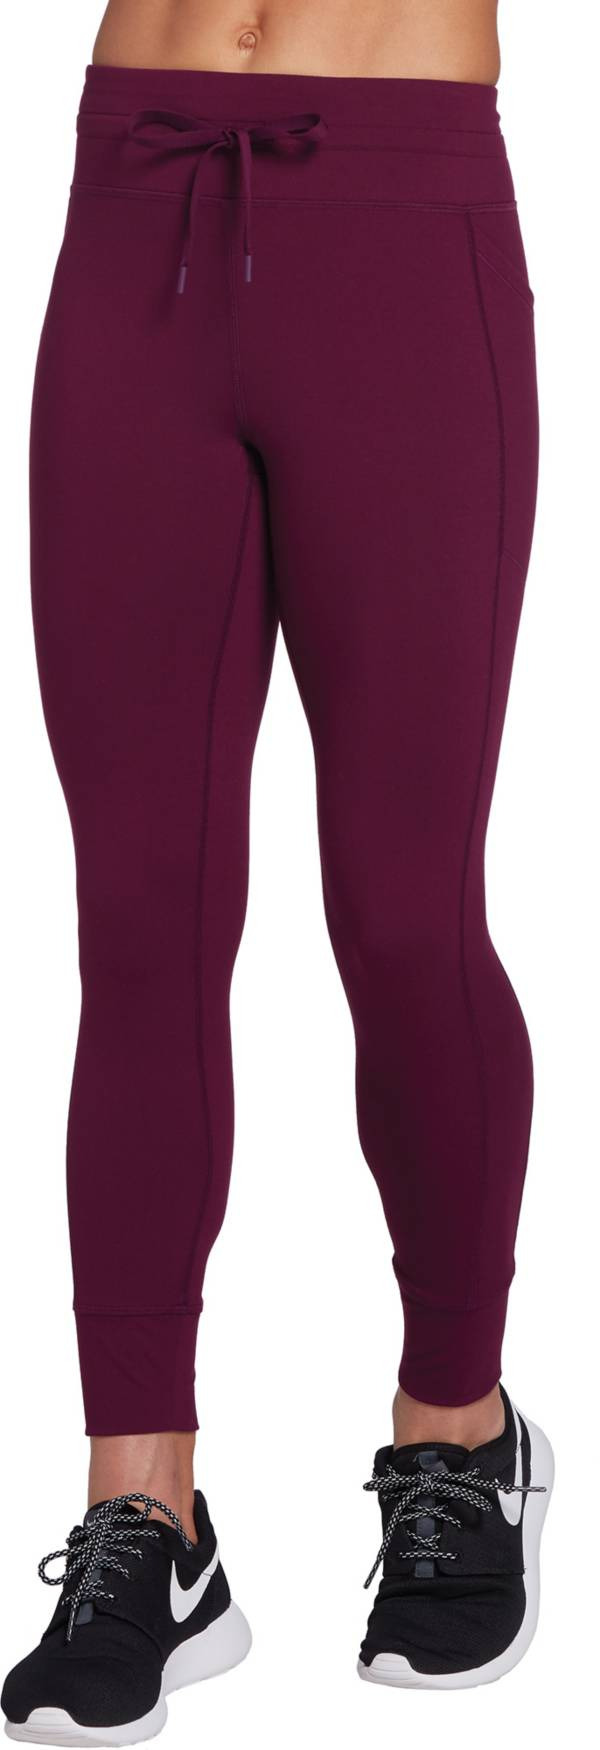 DSG Women's Performance 7/8 Jogger Tights product image